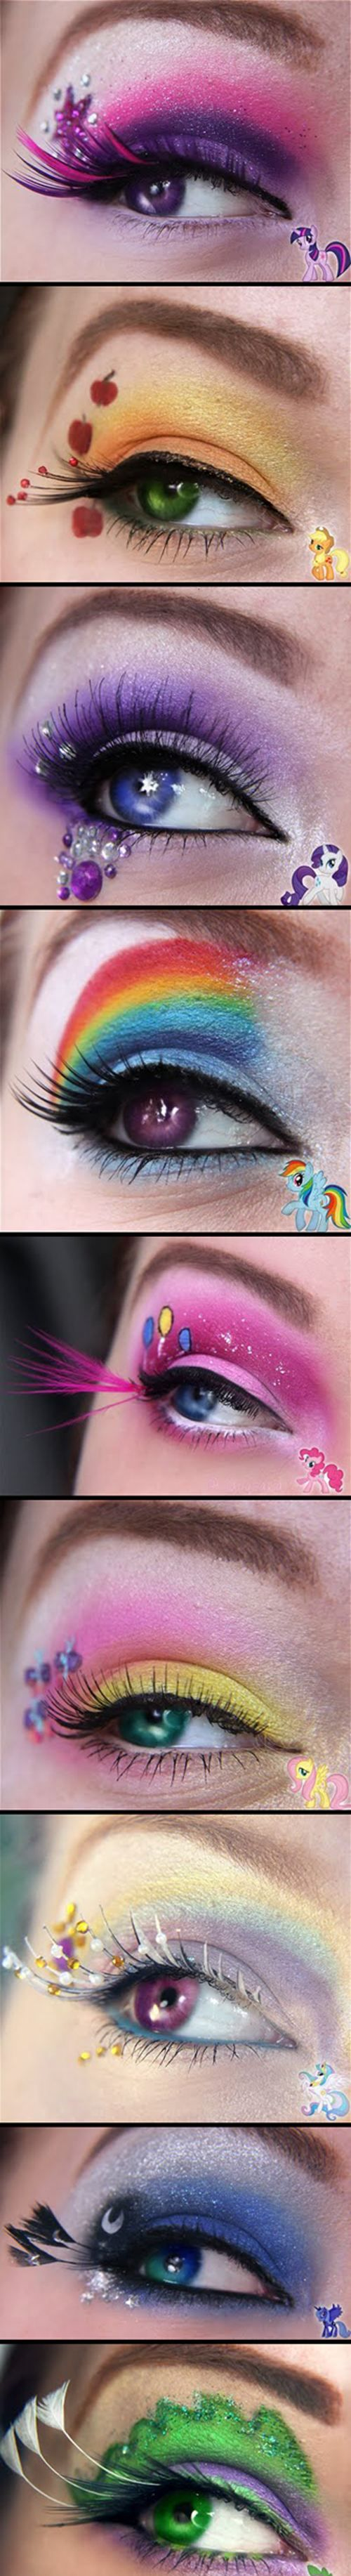 My Little Pony Makeup Madness!! << This would be great makeup for festivals.